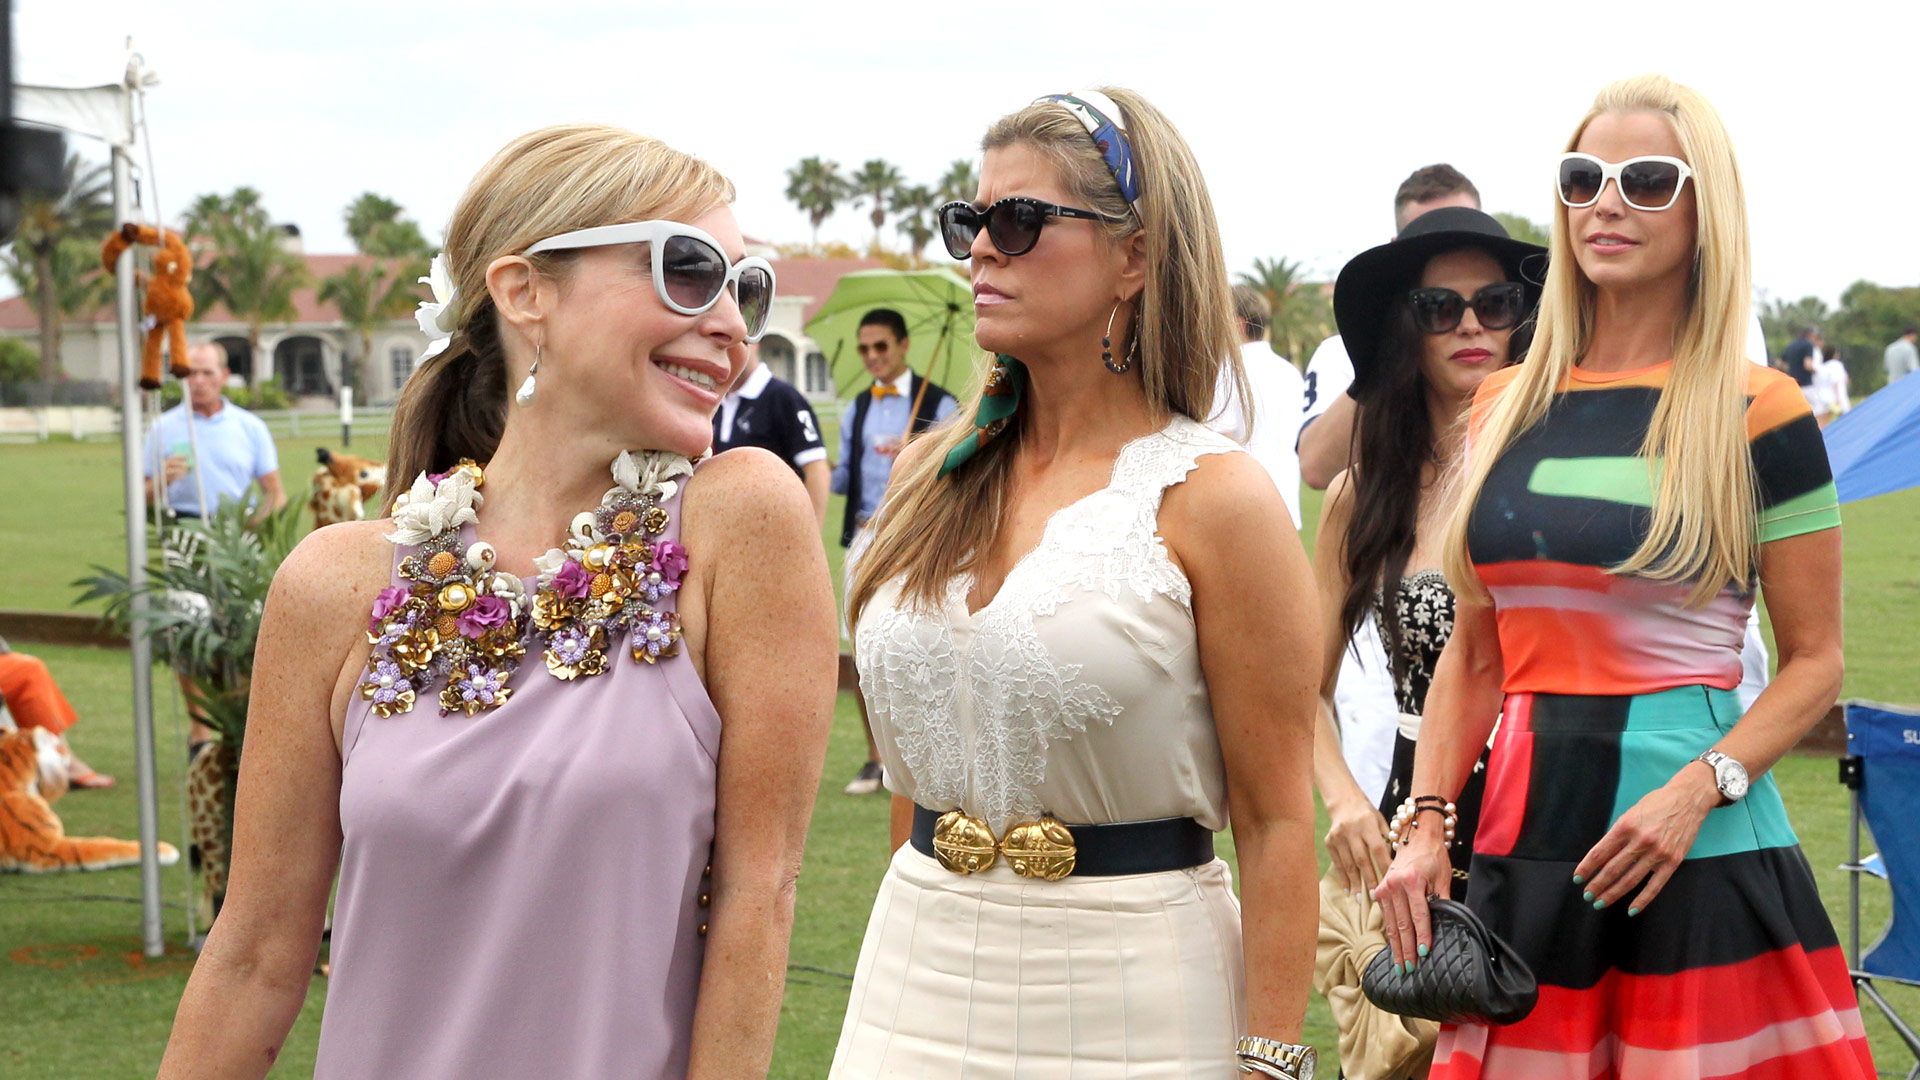 Leah Black Friendships Rhom